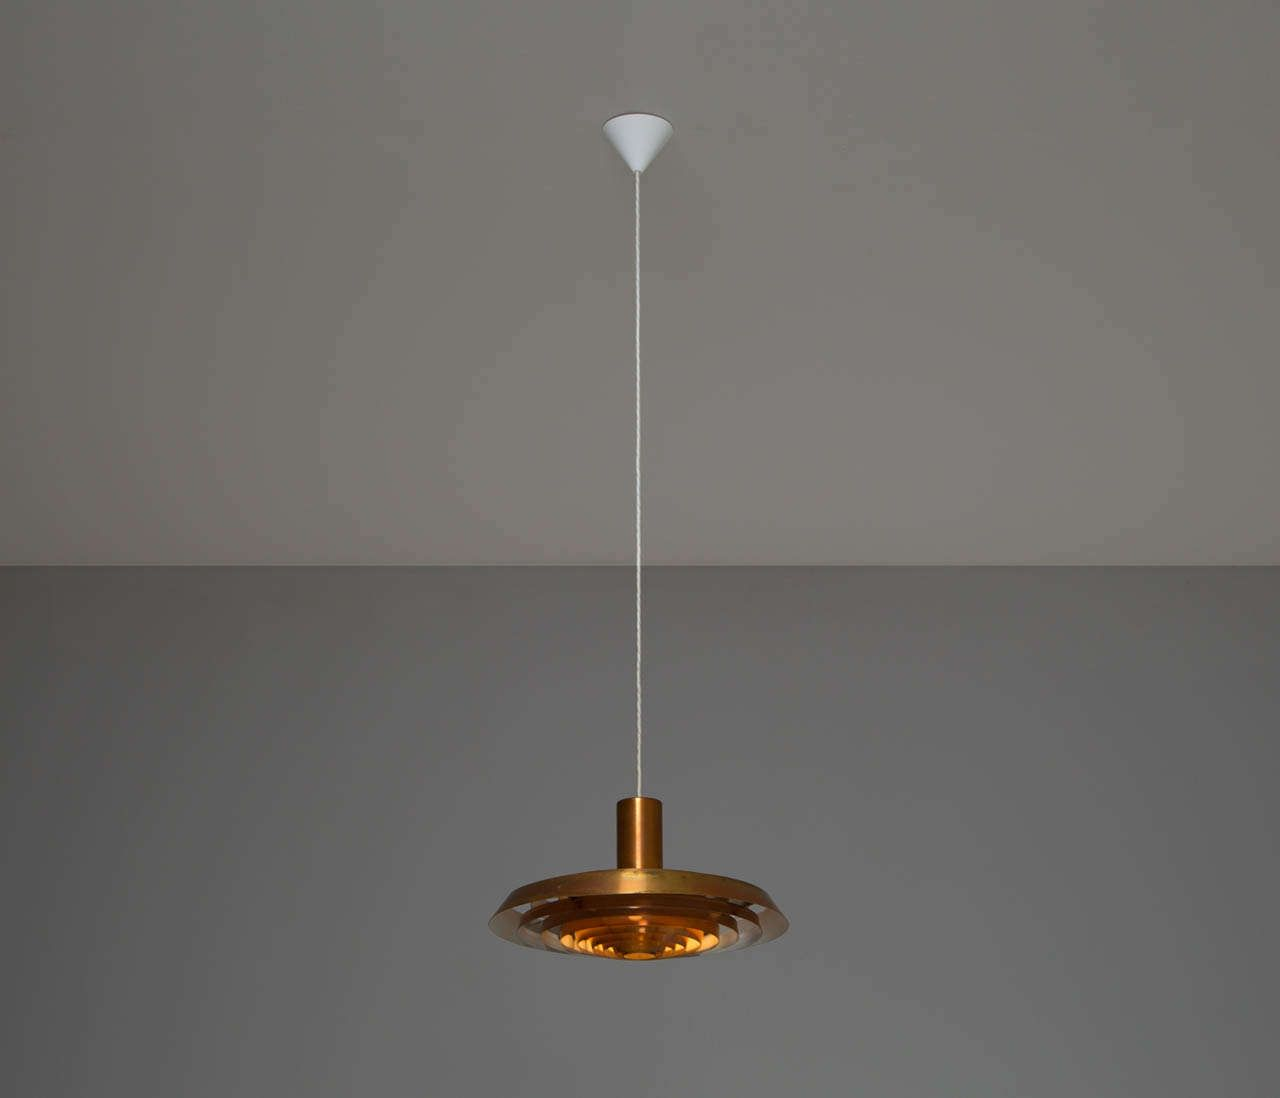 Poul Henningsen Copper 'Plate' Pendant for Louis Poulsen, 1960's For Sale at 1stdibs